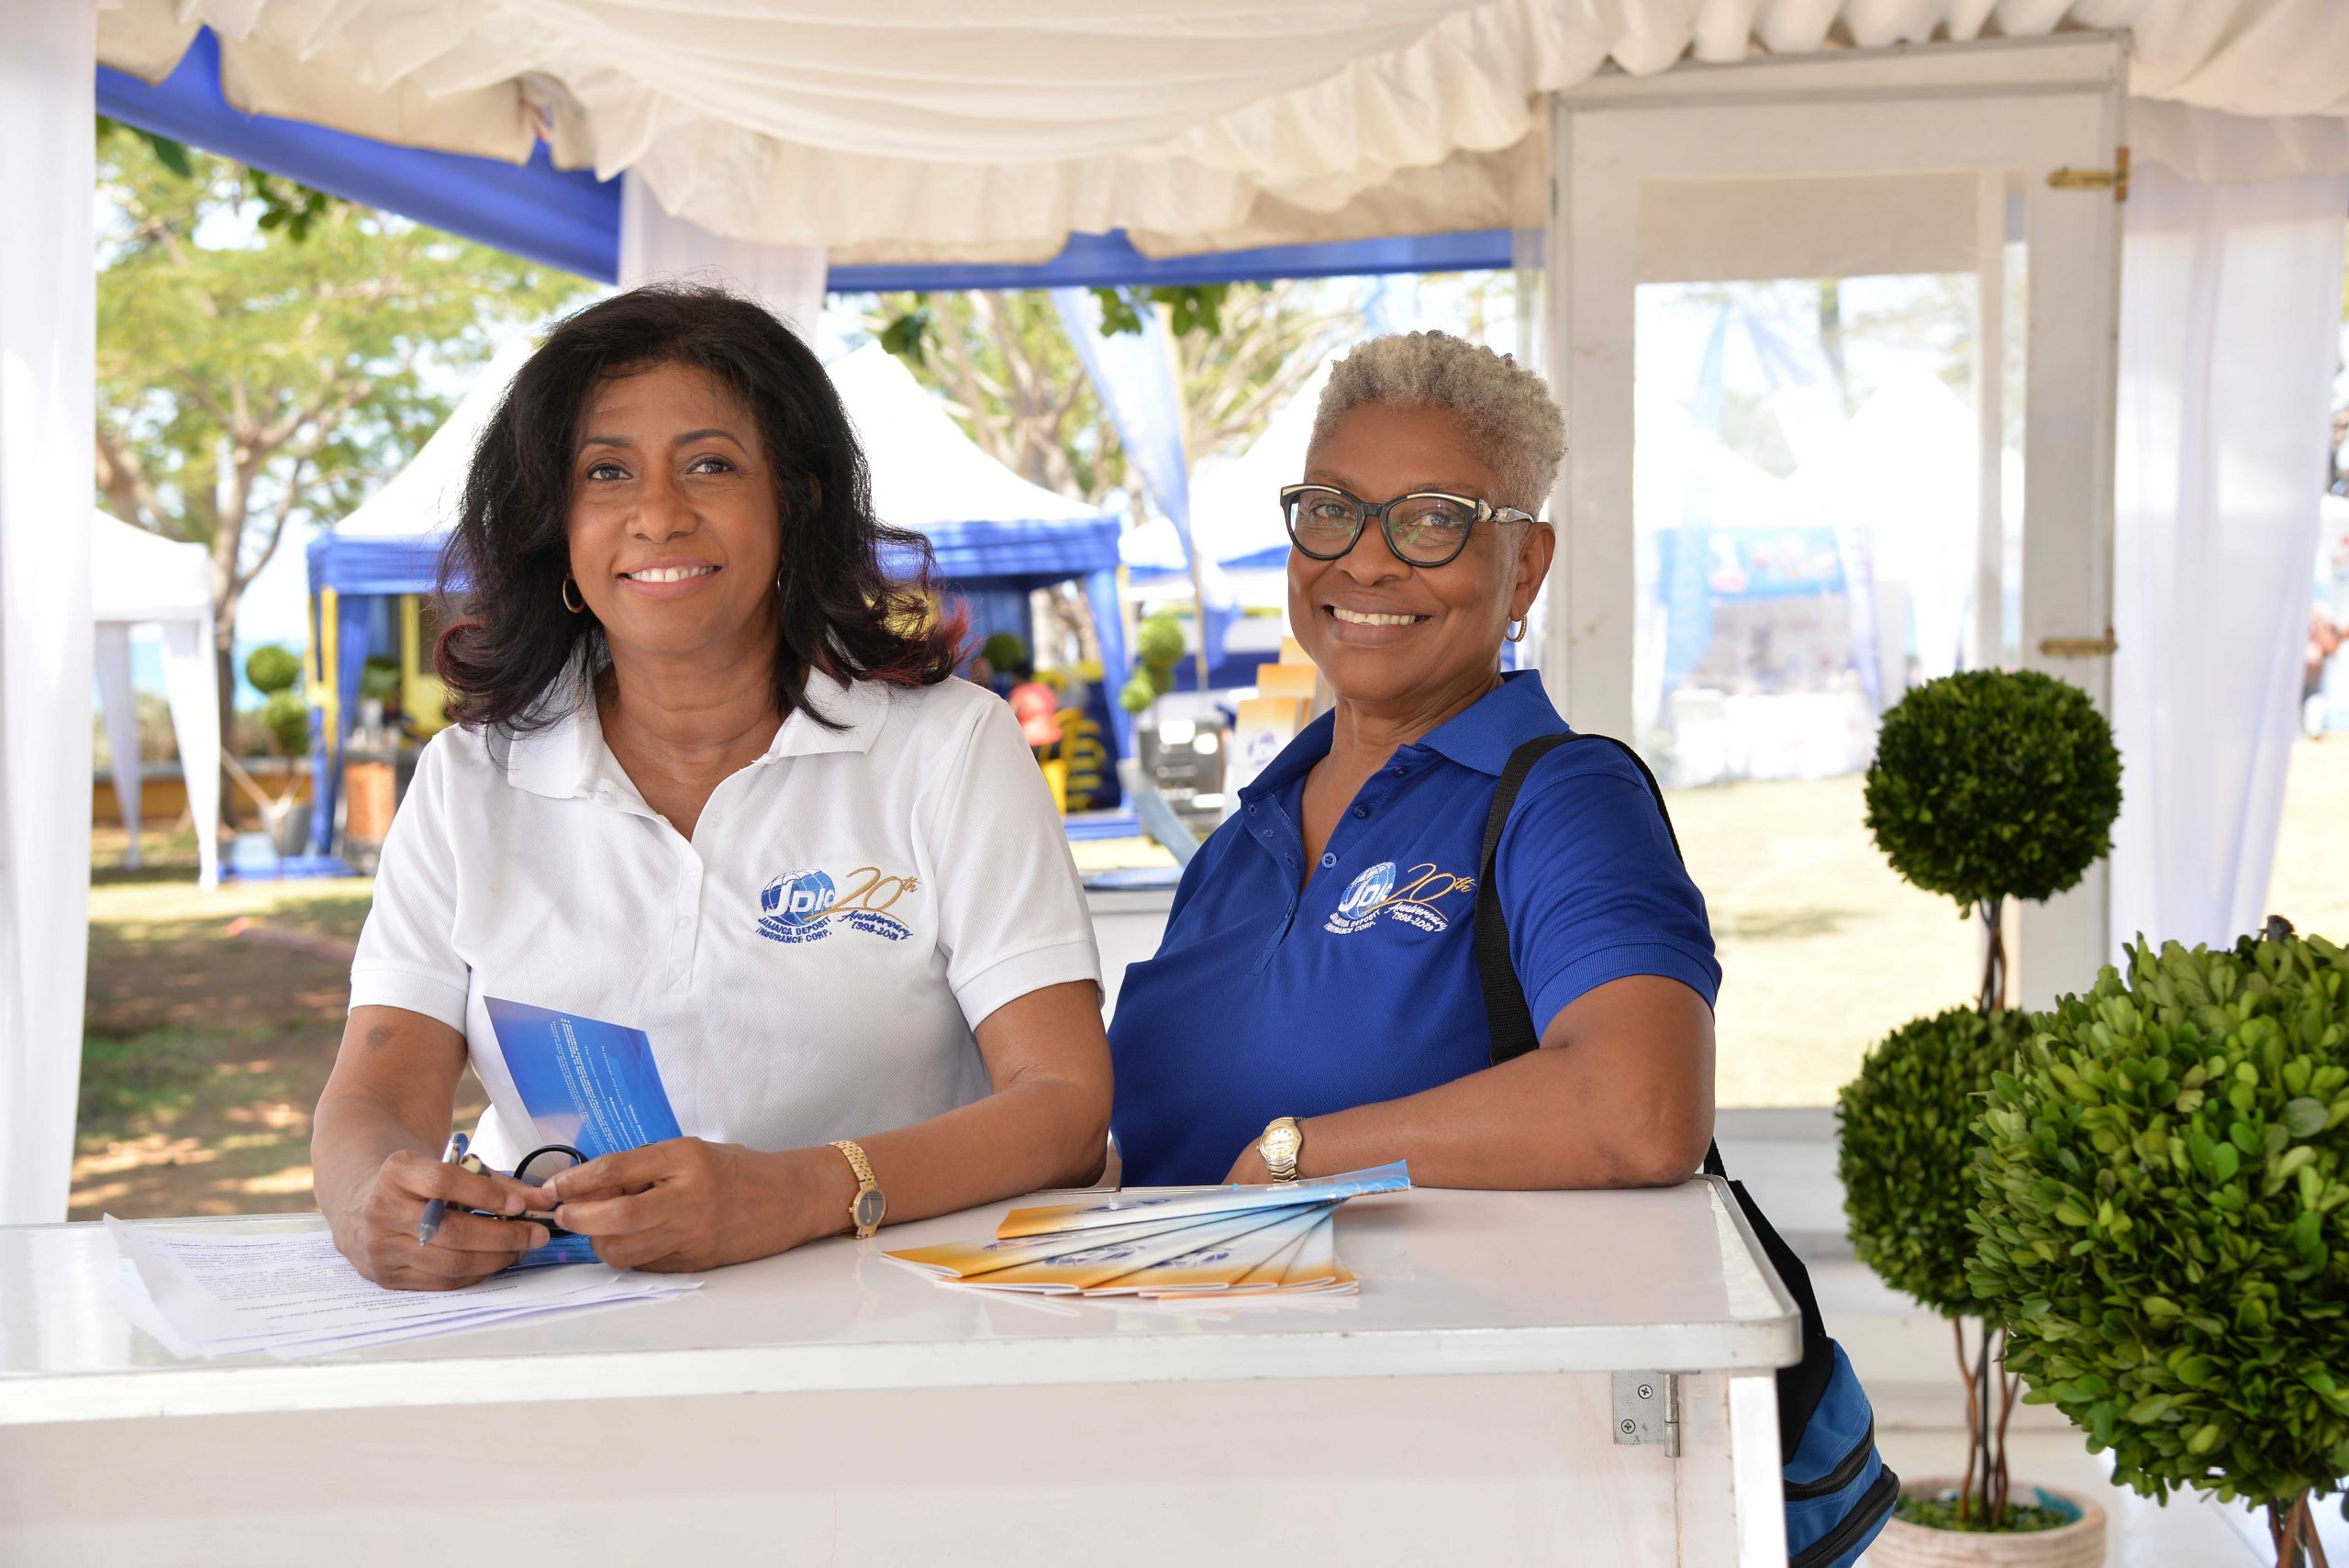 Chief Executive Officer., Antoinette McKain and Marjorie McGrath, Manager Corporate Communications smiled for the lens while awaiting the start of the JDIC's Public Forum and Financial Fair.